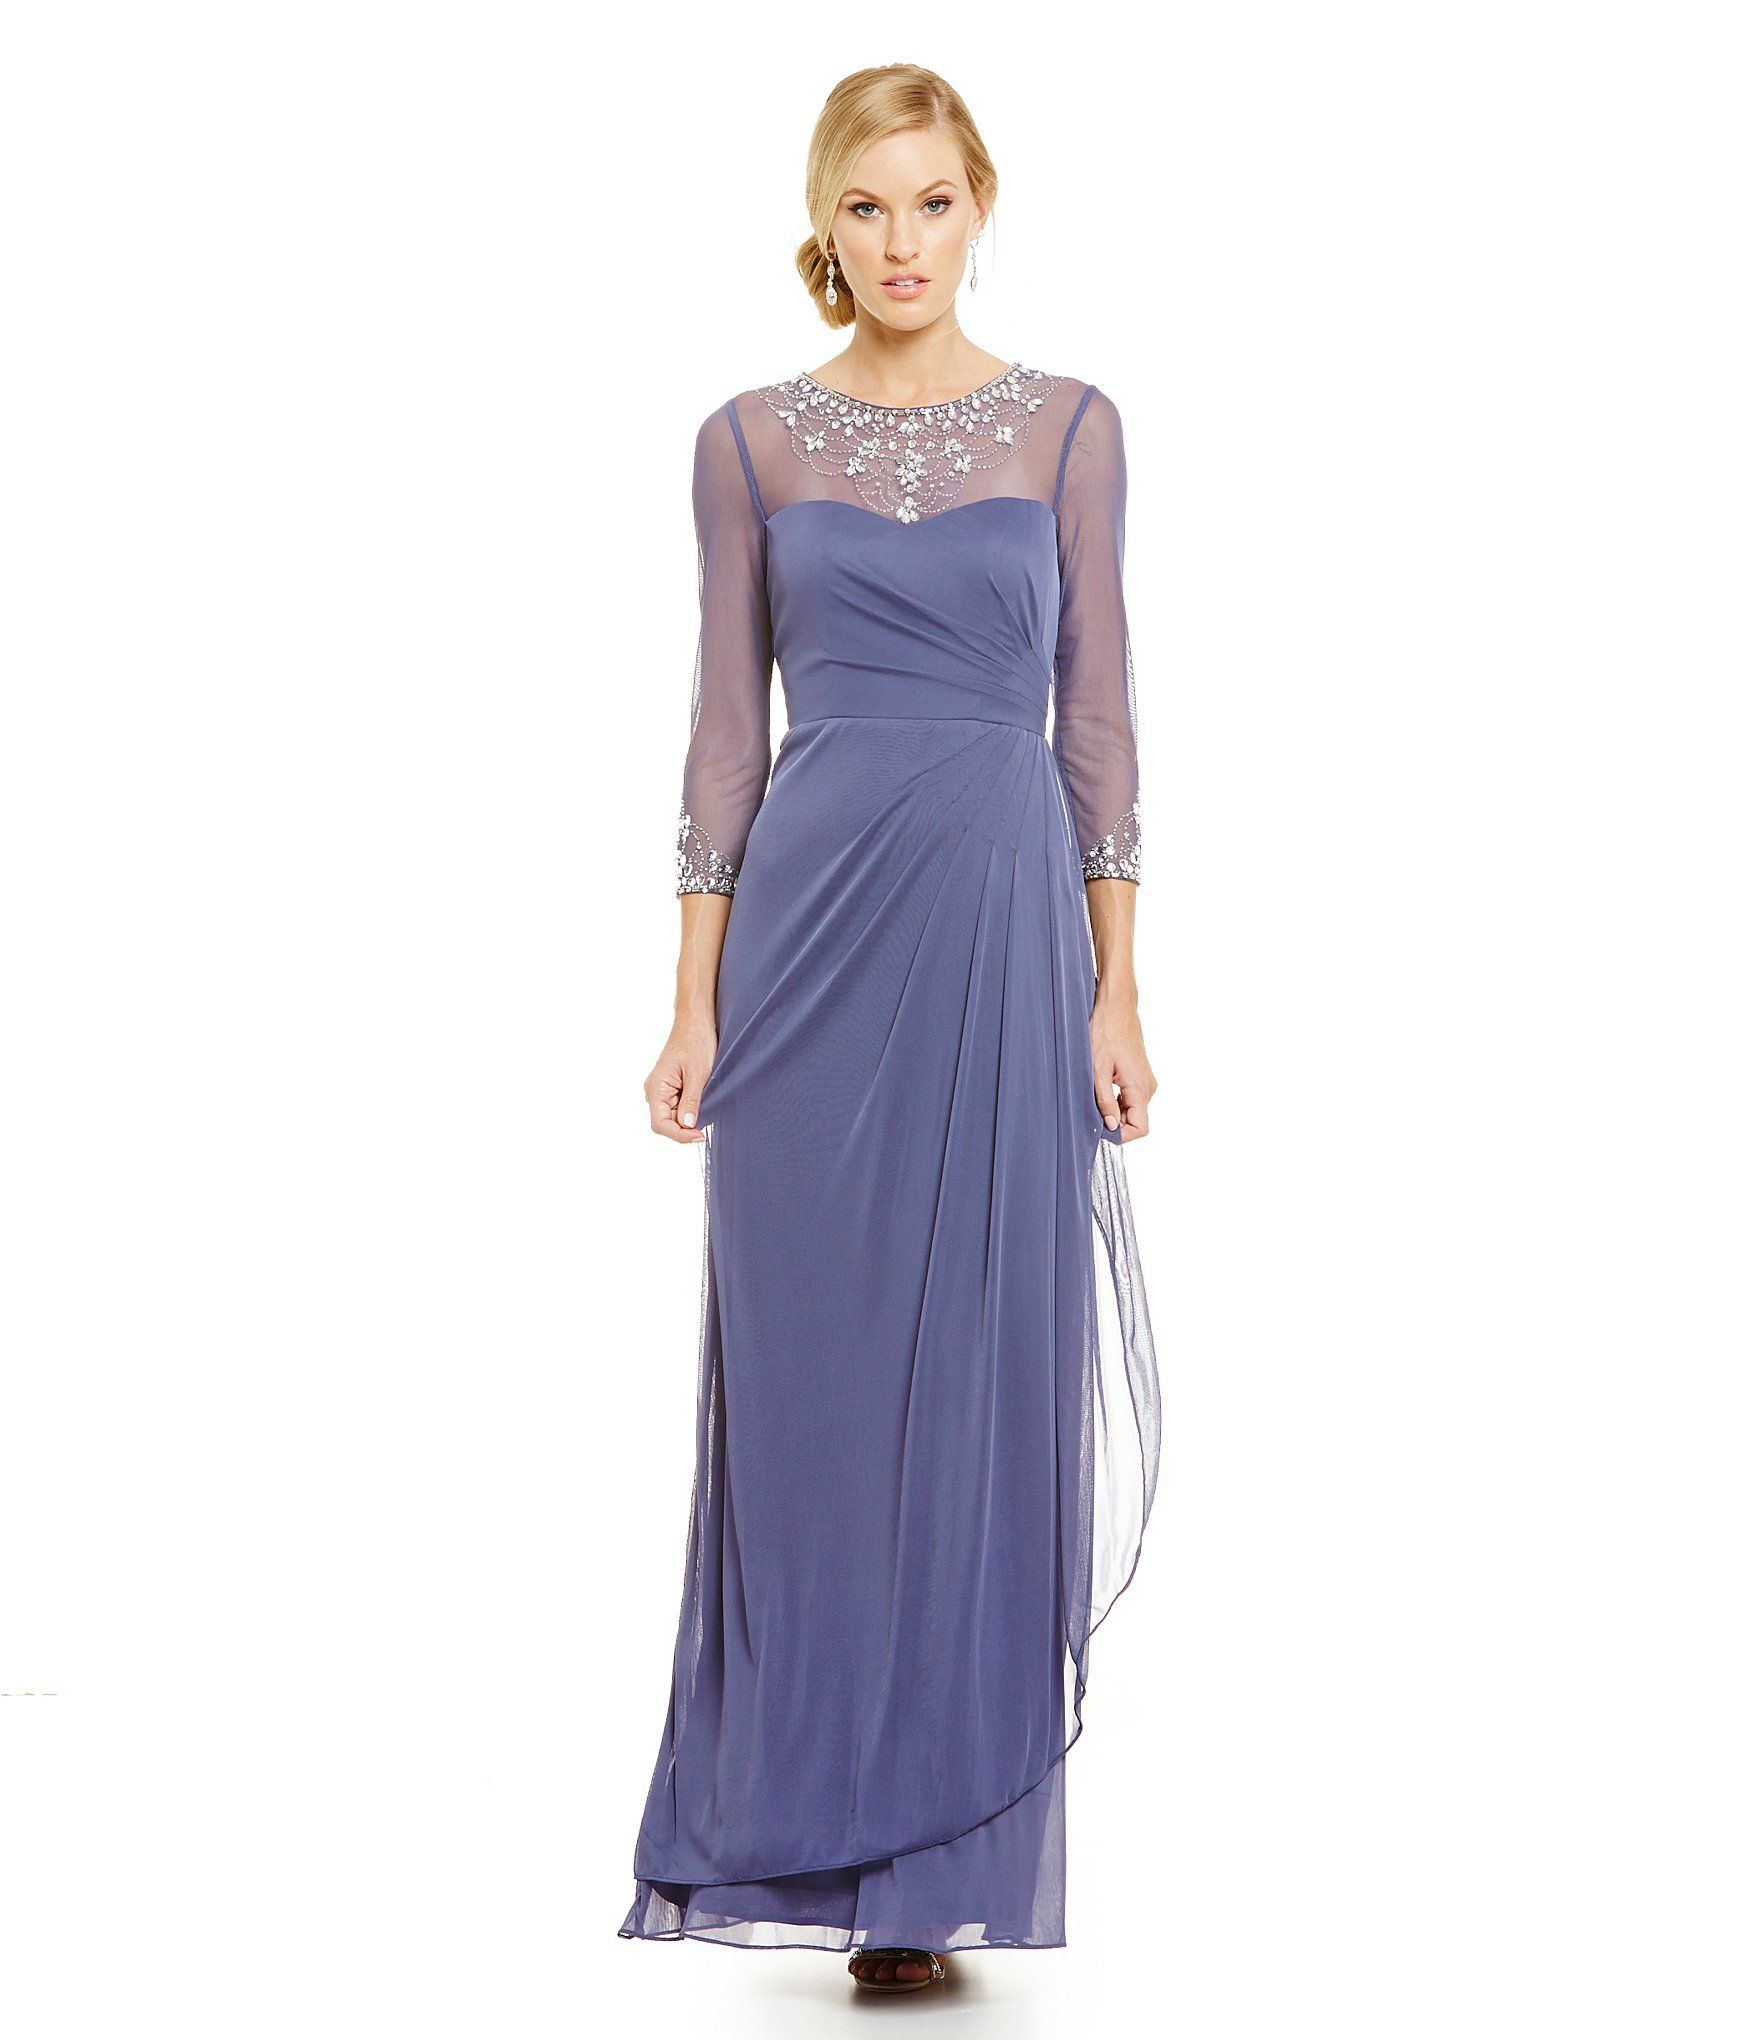 Dillards | bridesmaid dresses | Pinterest